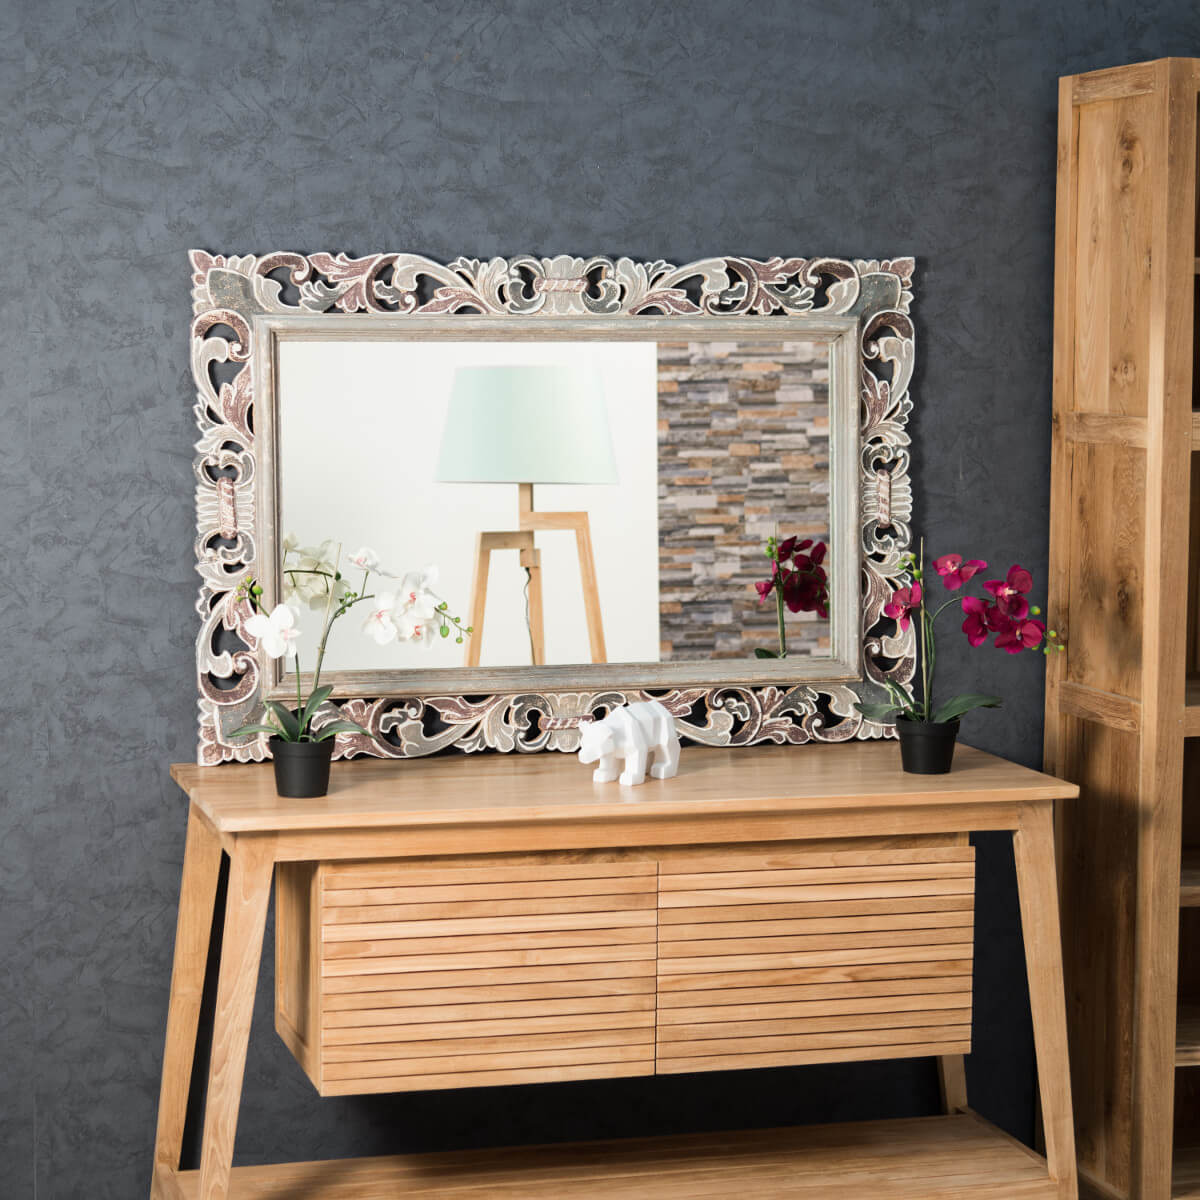 miroir charme en bois patin gris et prune 120cm x 80cm. Black Bedroom Furniture Sets. Home Design Ideas